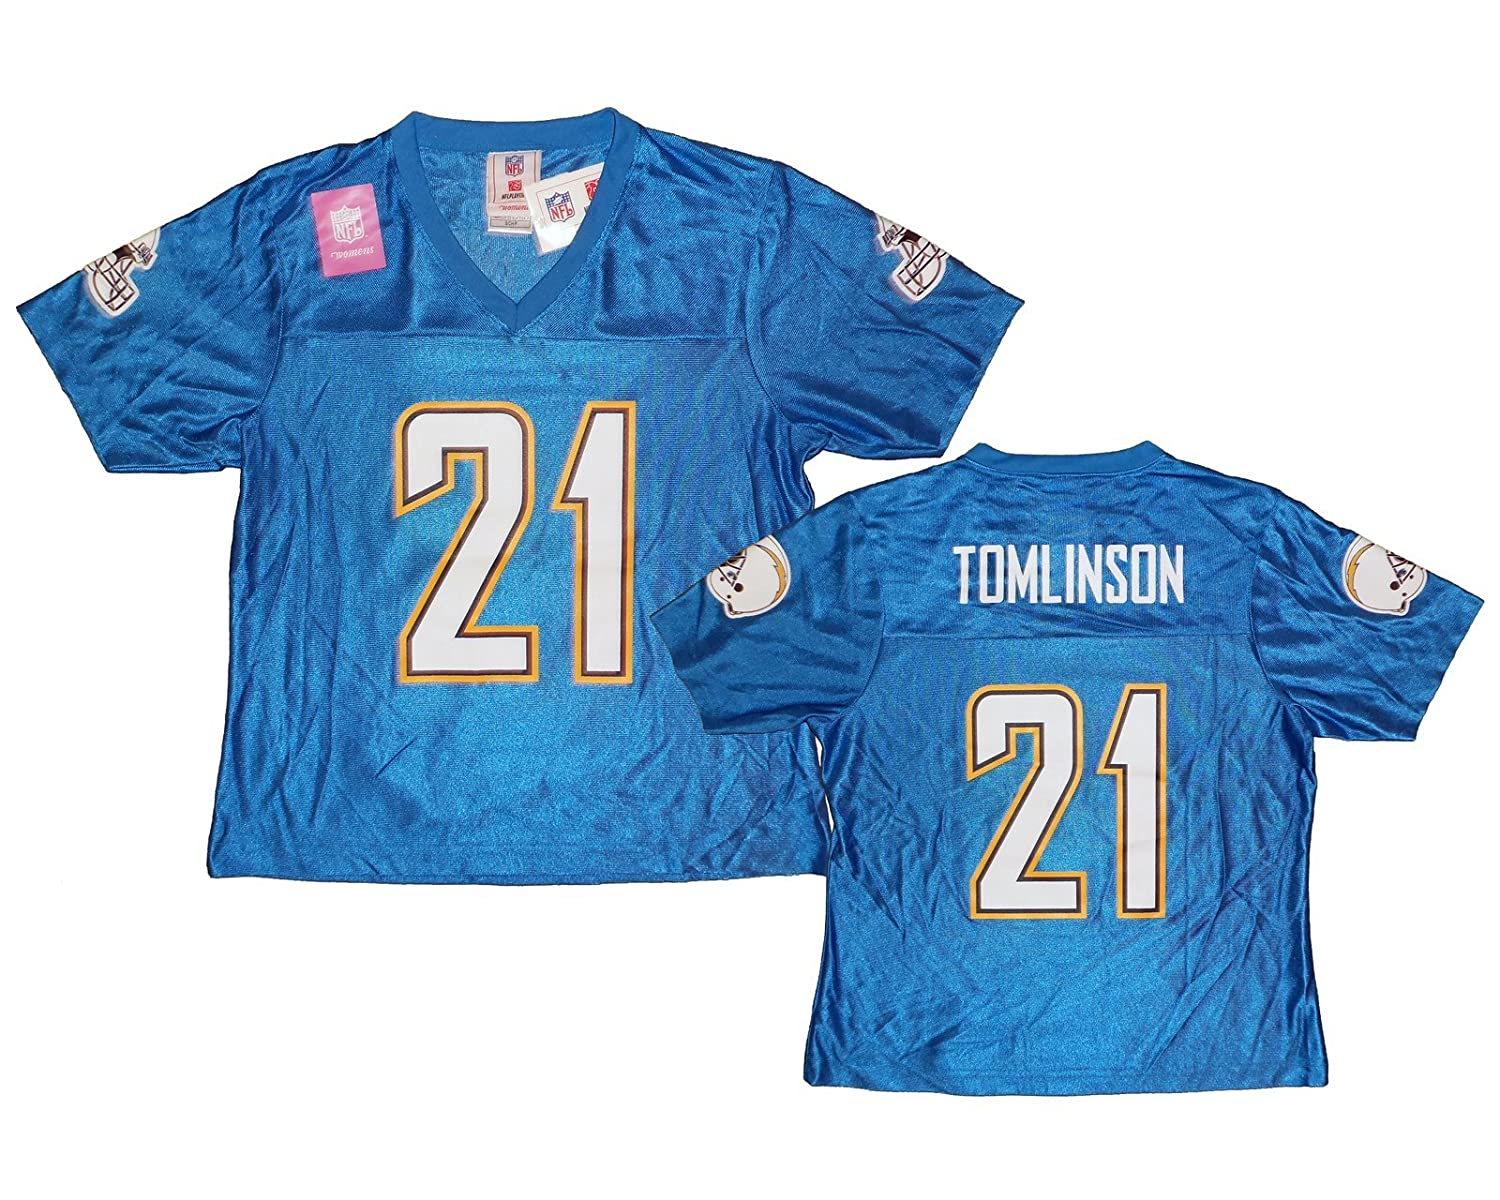 2de4f5177 Amazon.com  San Diego Chargers LaDainian Tomlinson 21 NFL Womens Fashion  Jersey